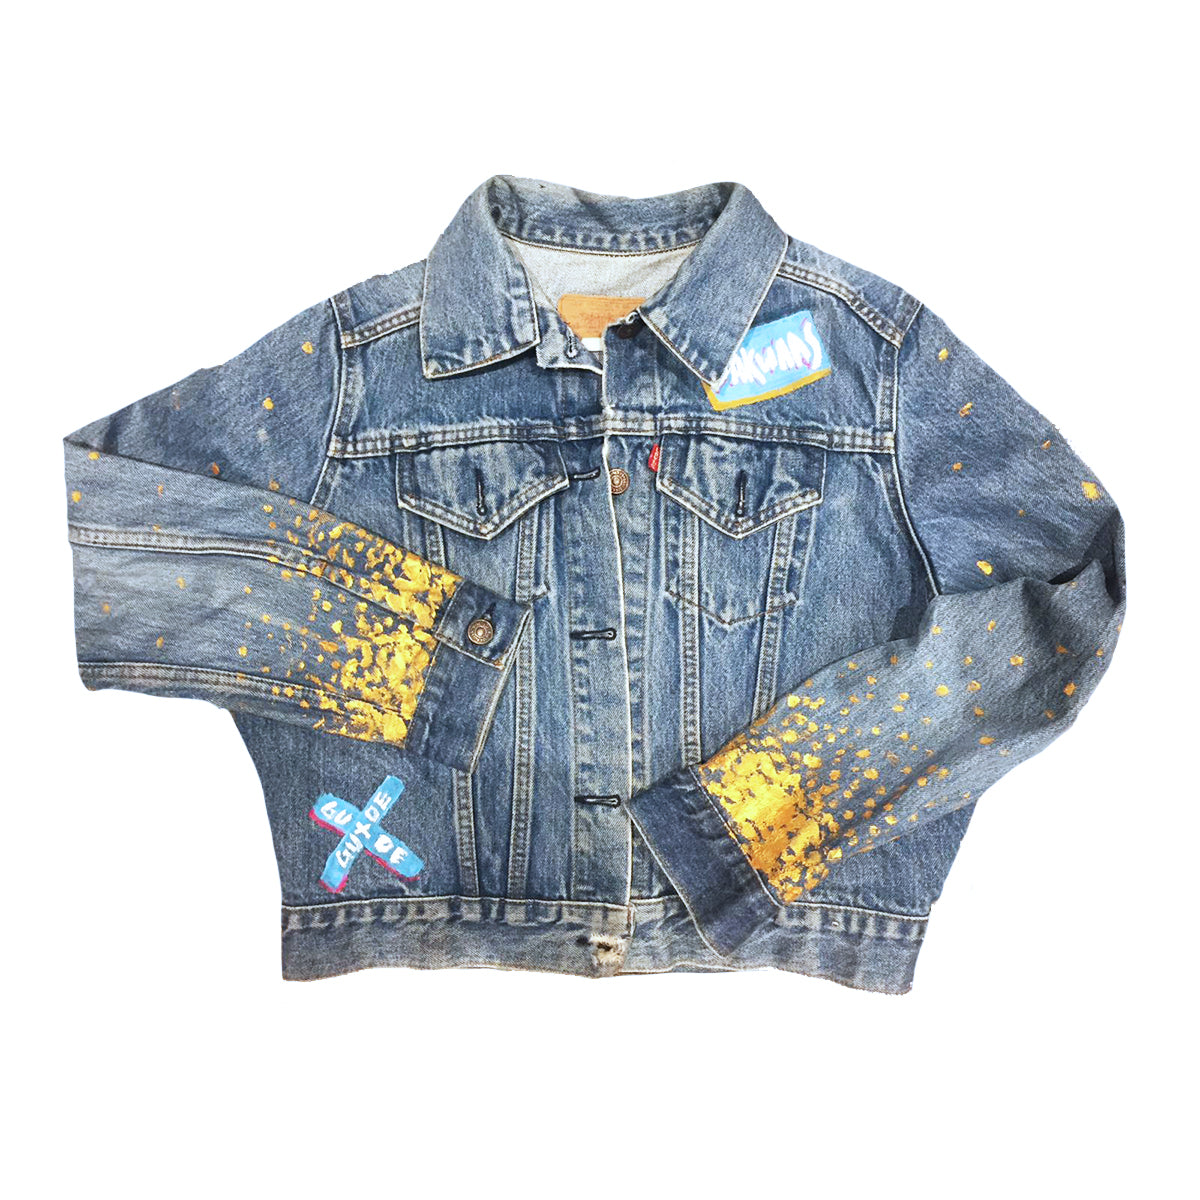 GUIDE - Hand Painted Jacket - Babbuthepainter